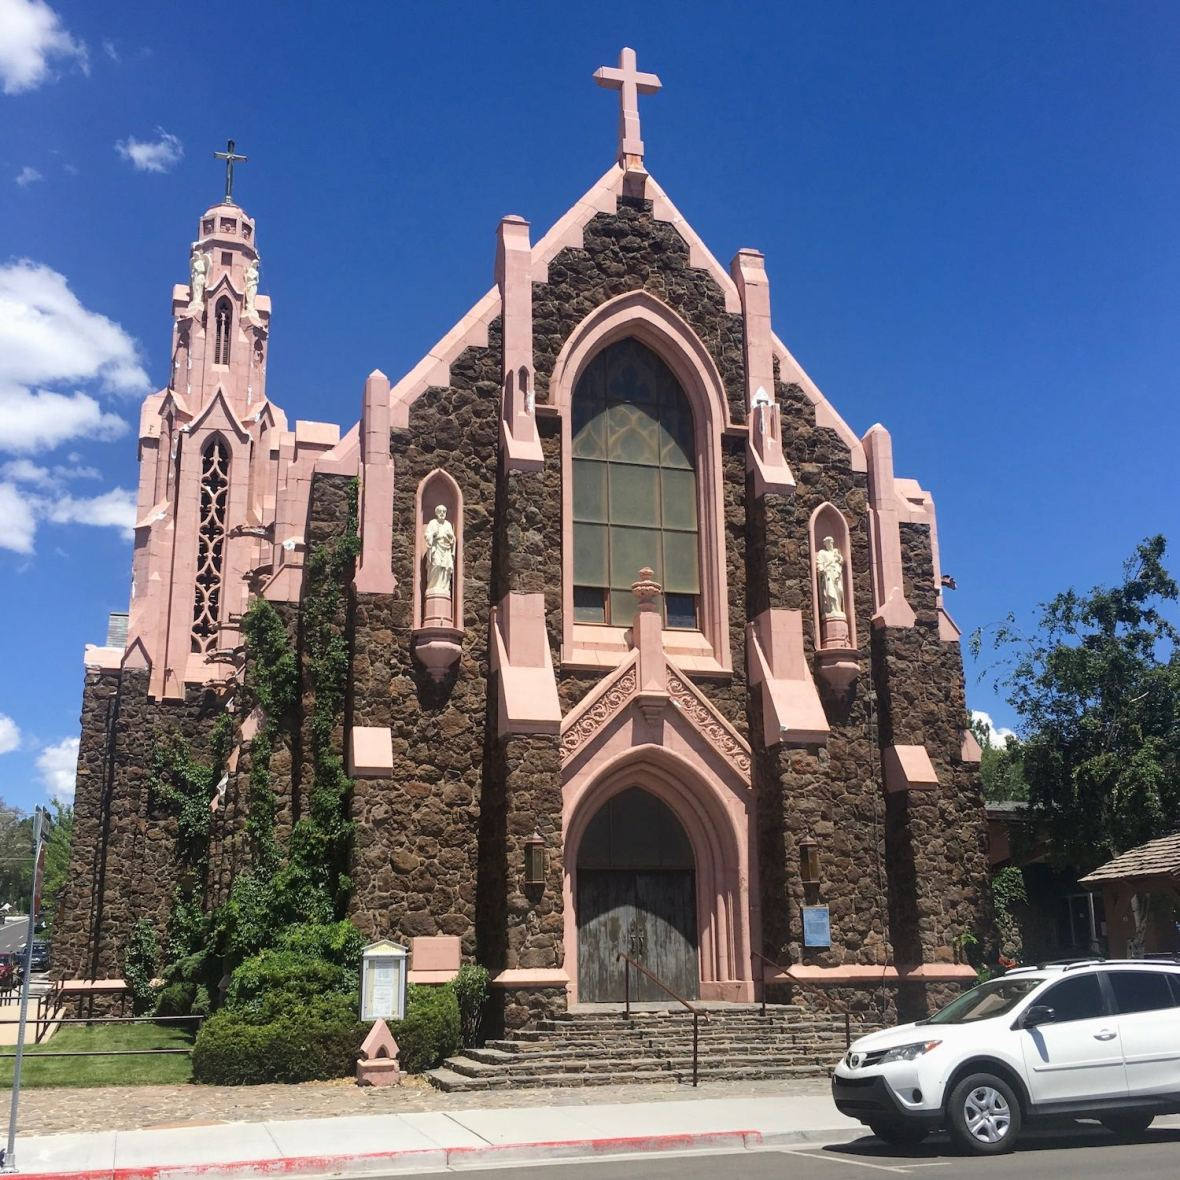 Interesting Church in downtown Flagstaff, Arizona